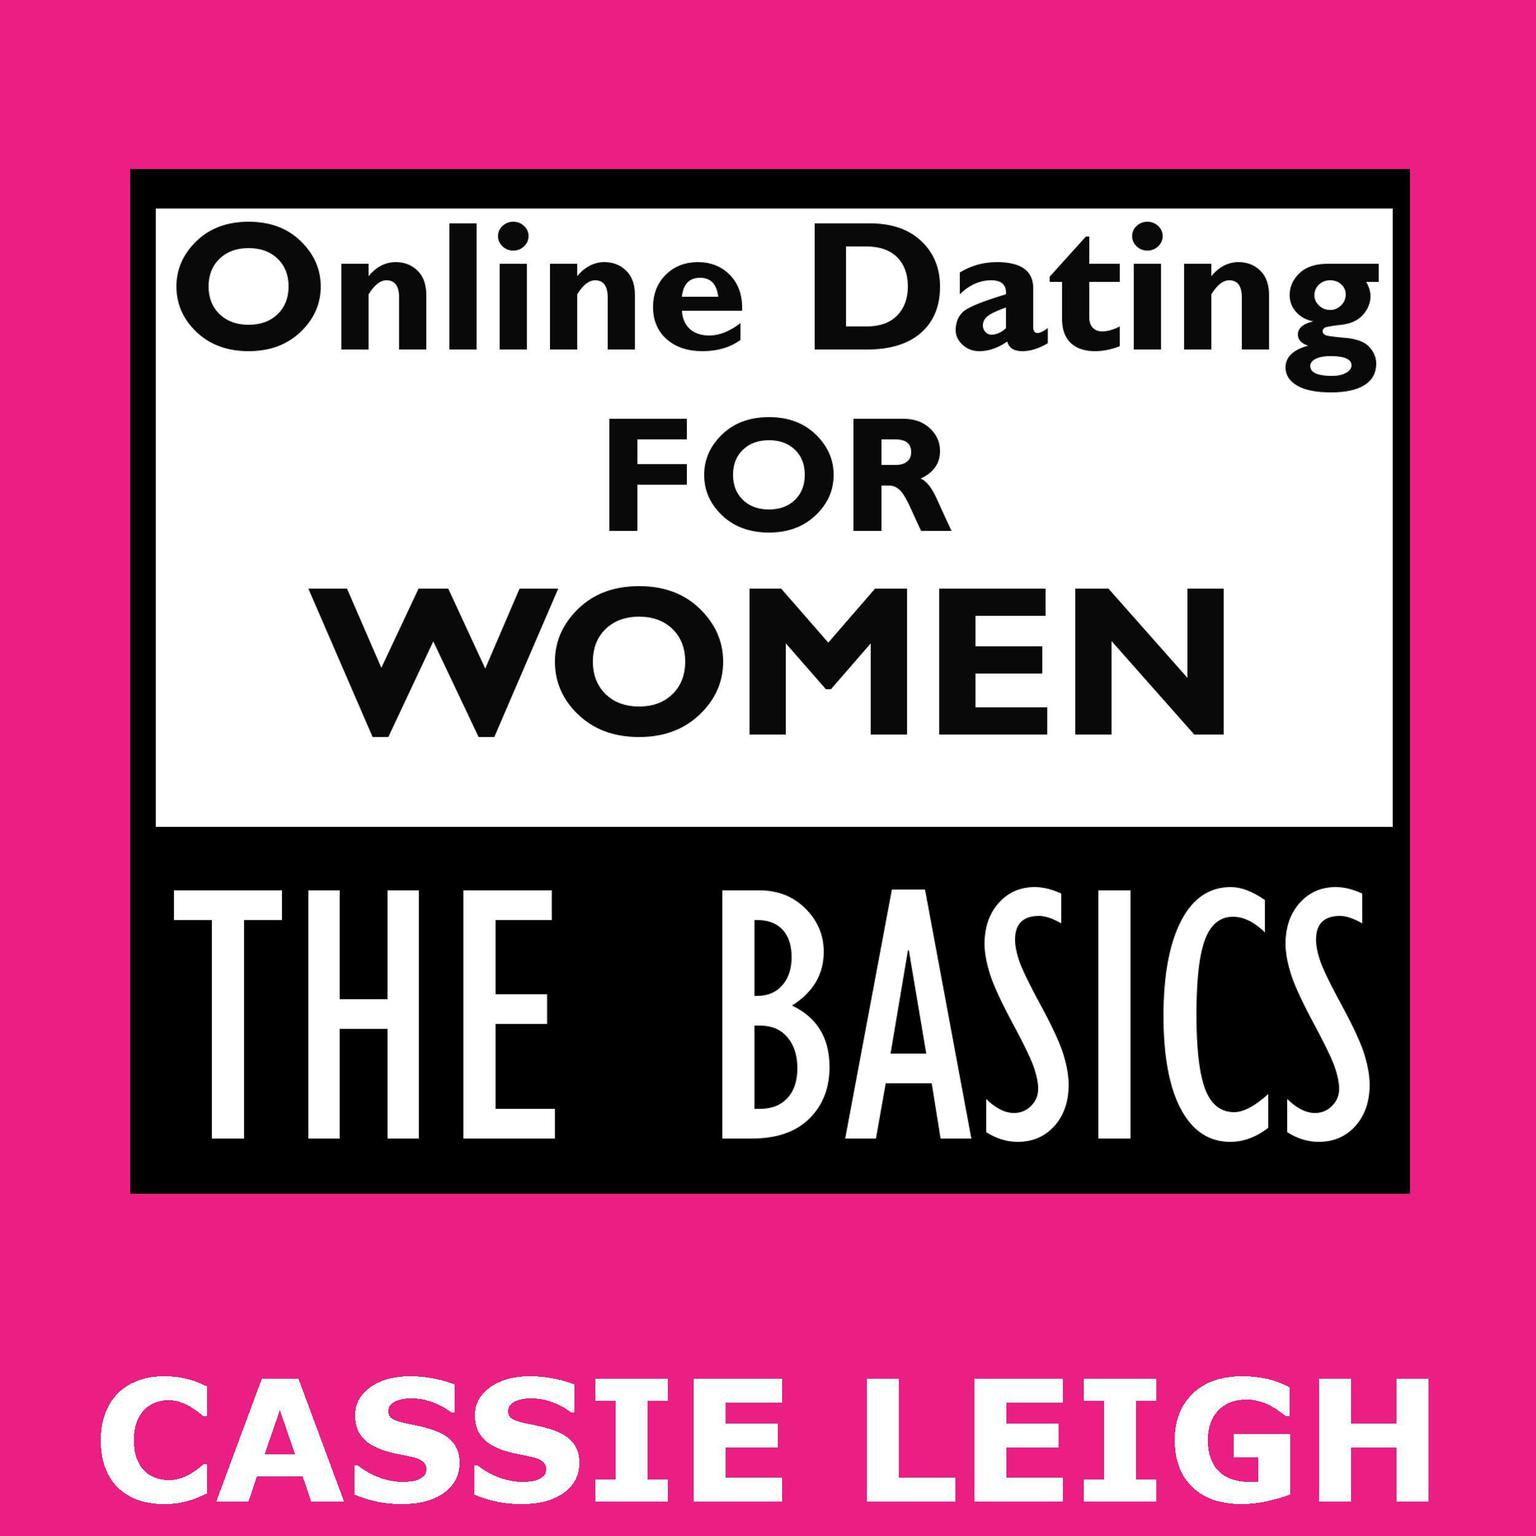 Online Dating for Women: The Basics: The Basics Audiobook, by Cassie Leigh